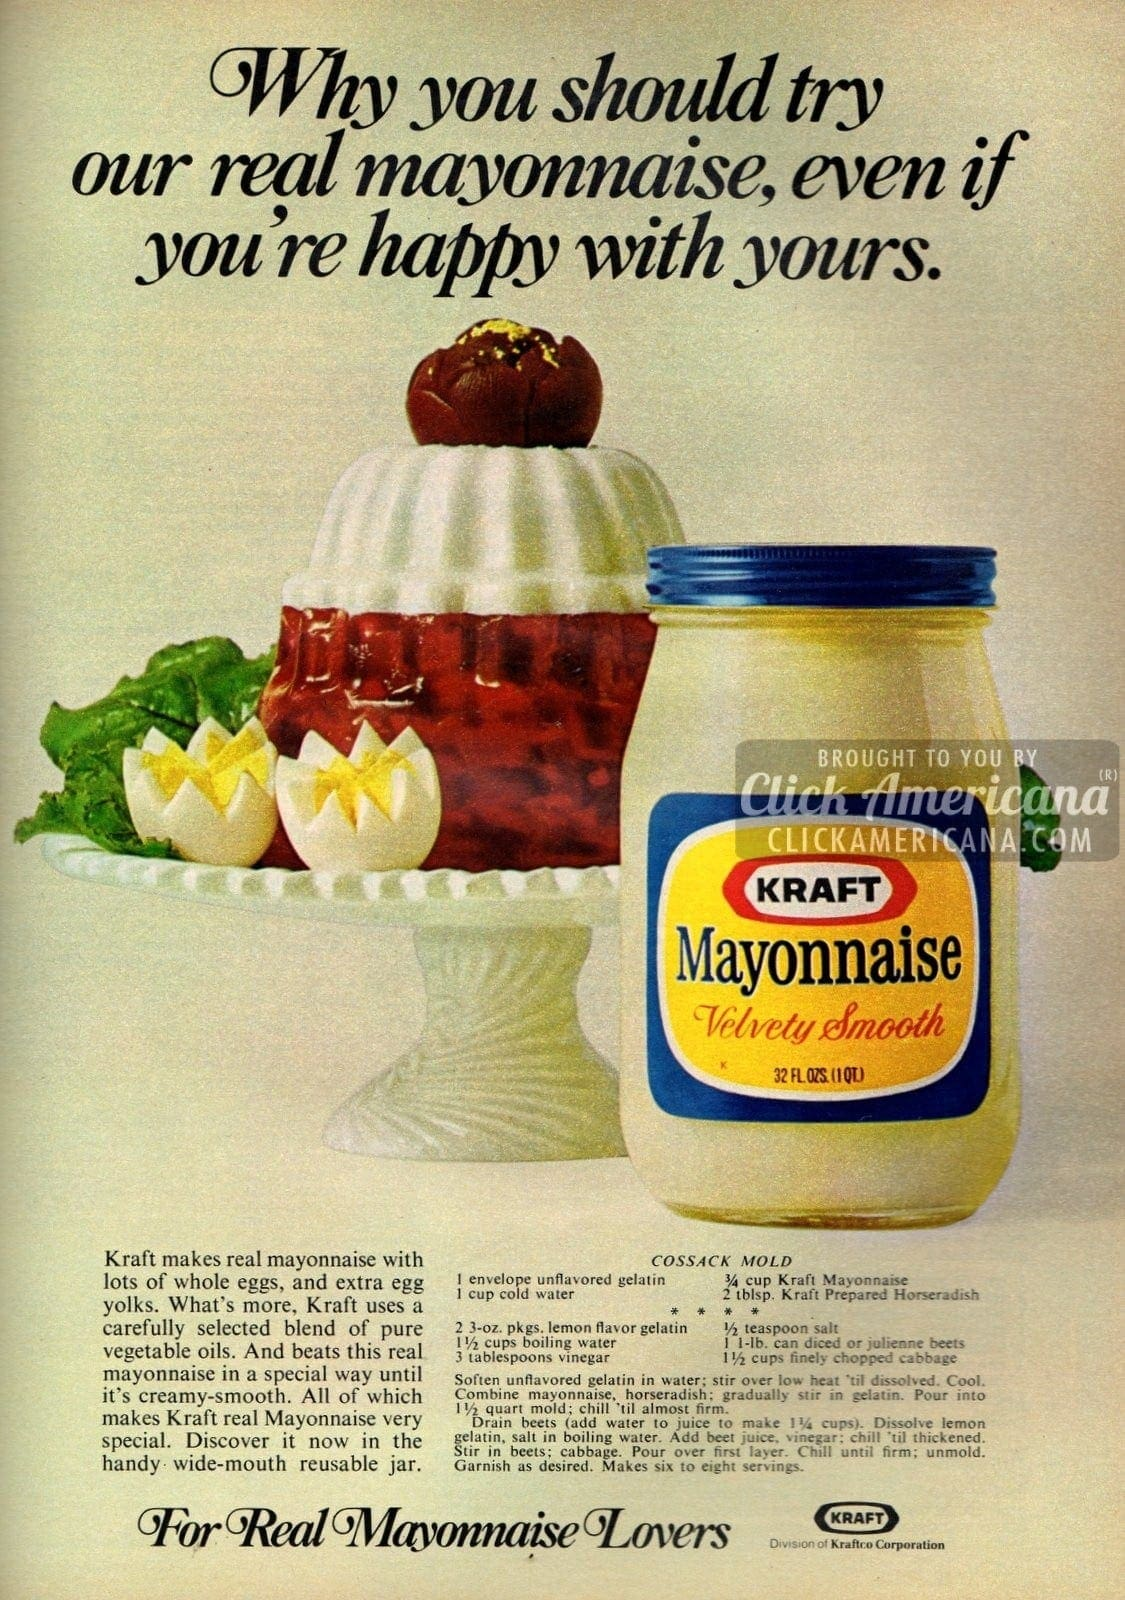 Savory Cossack mold with mayo (1972)